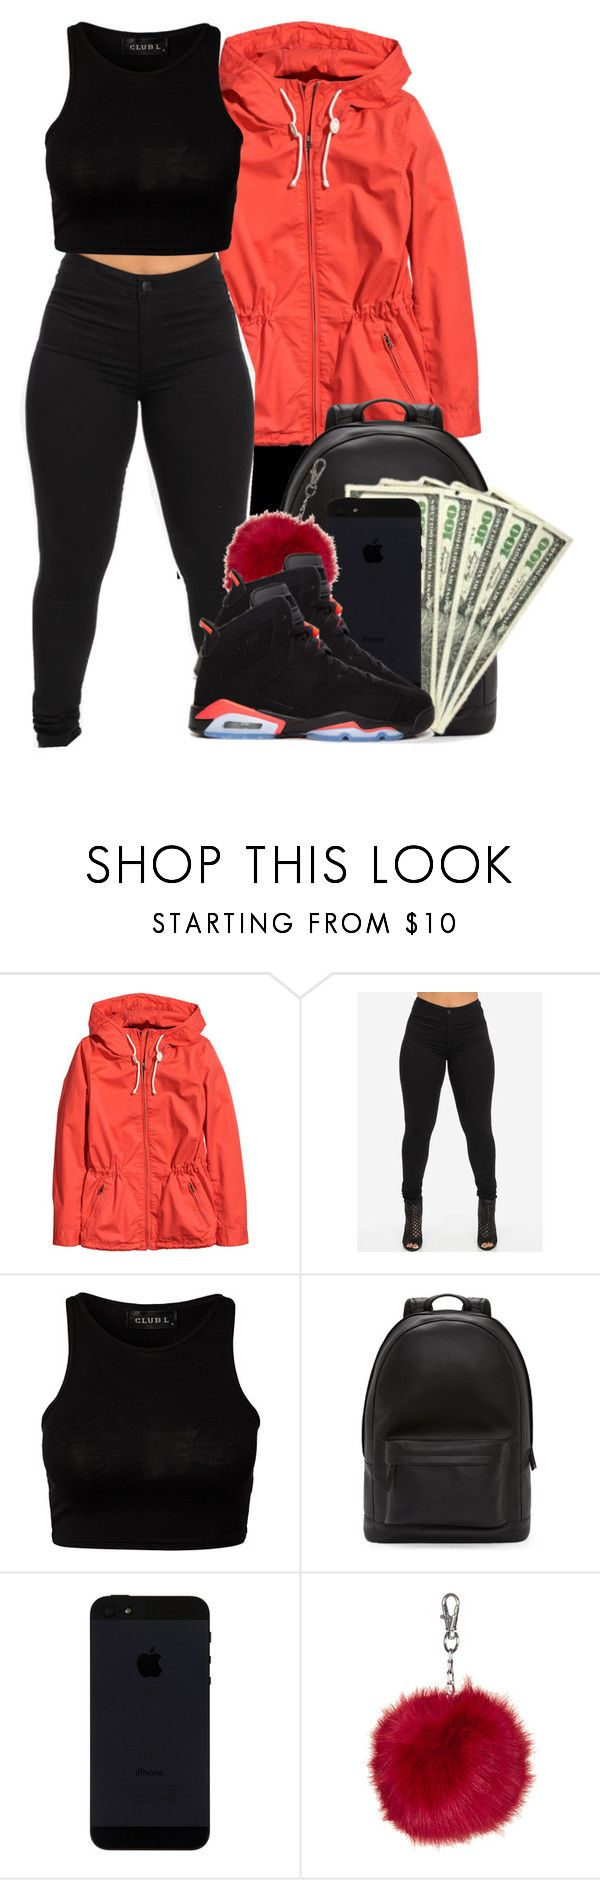 """""""Untitled #190"""" by heavensincere ❤ liked on Polyvore featuring H&M, PB 0110, Topshop and Retrò"""